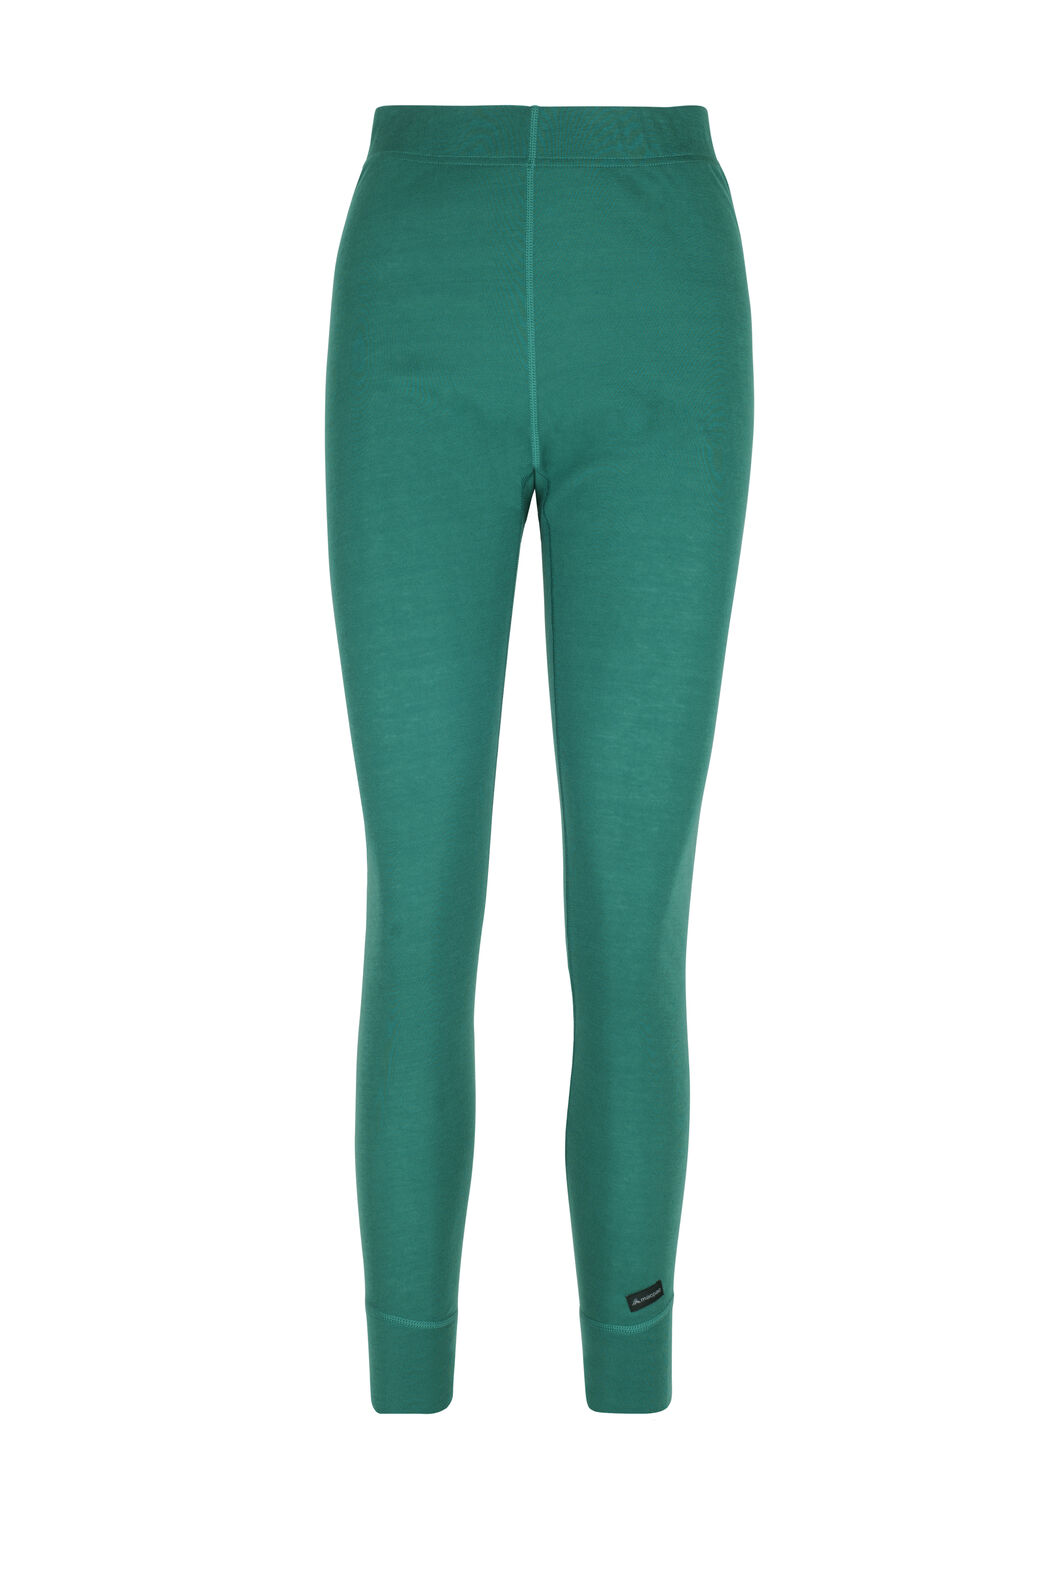 Macpac Geothermal Long Johns - Women's, Storm, hi-res